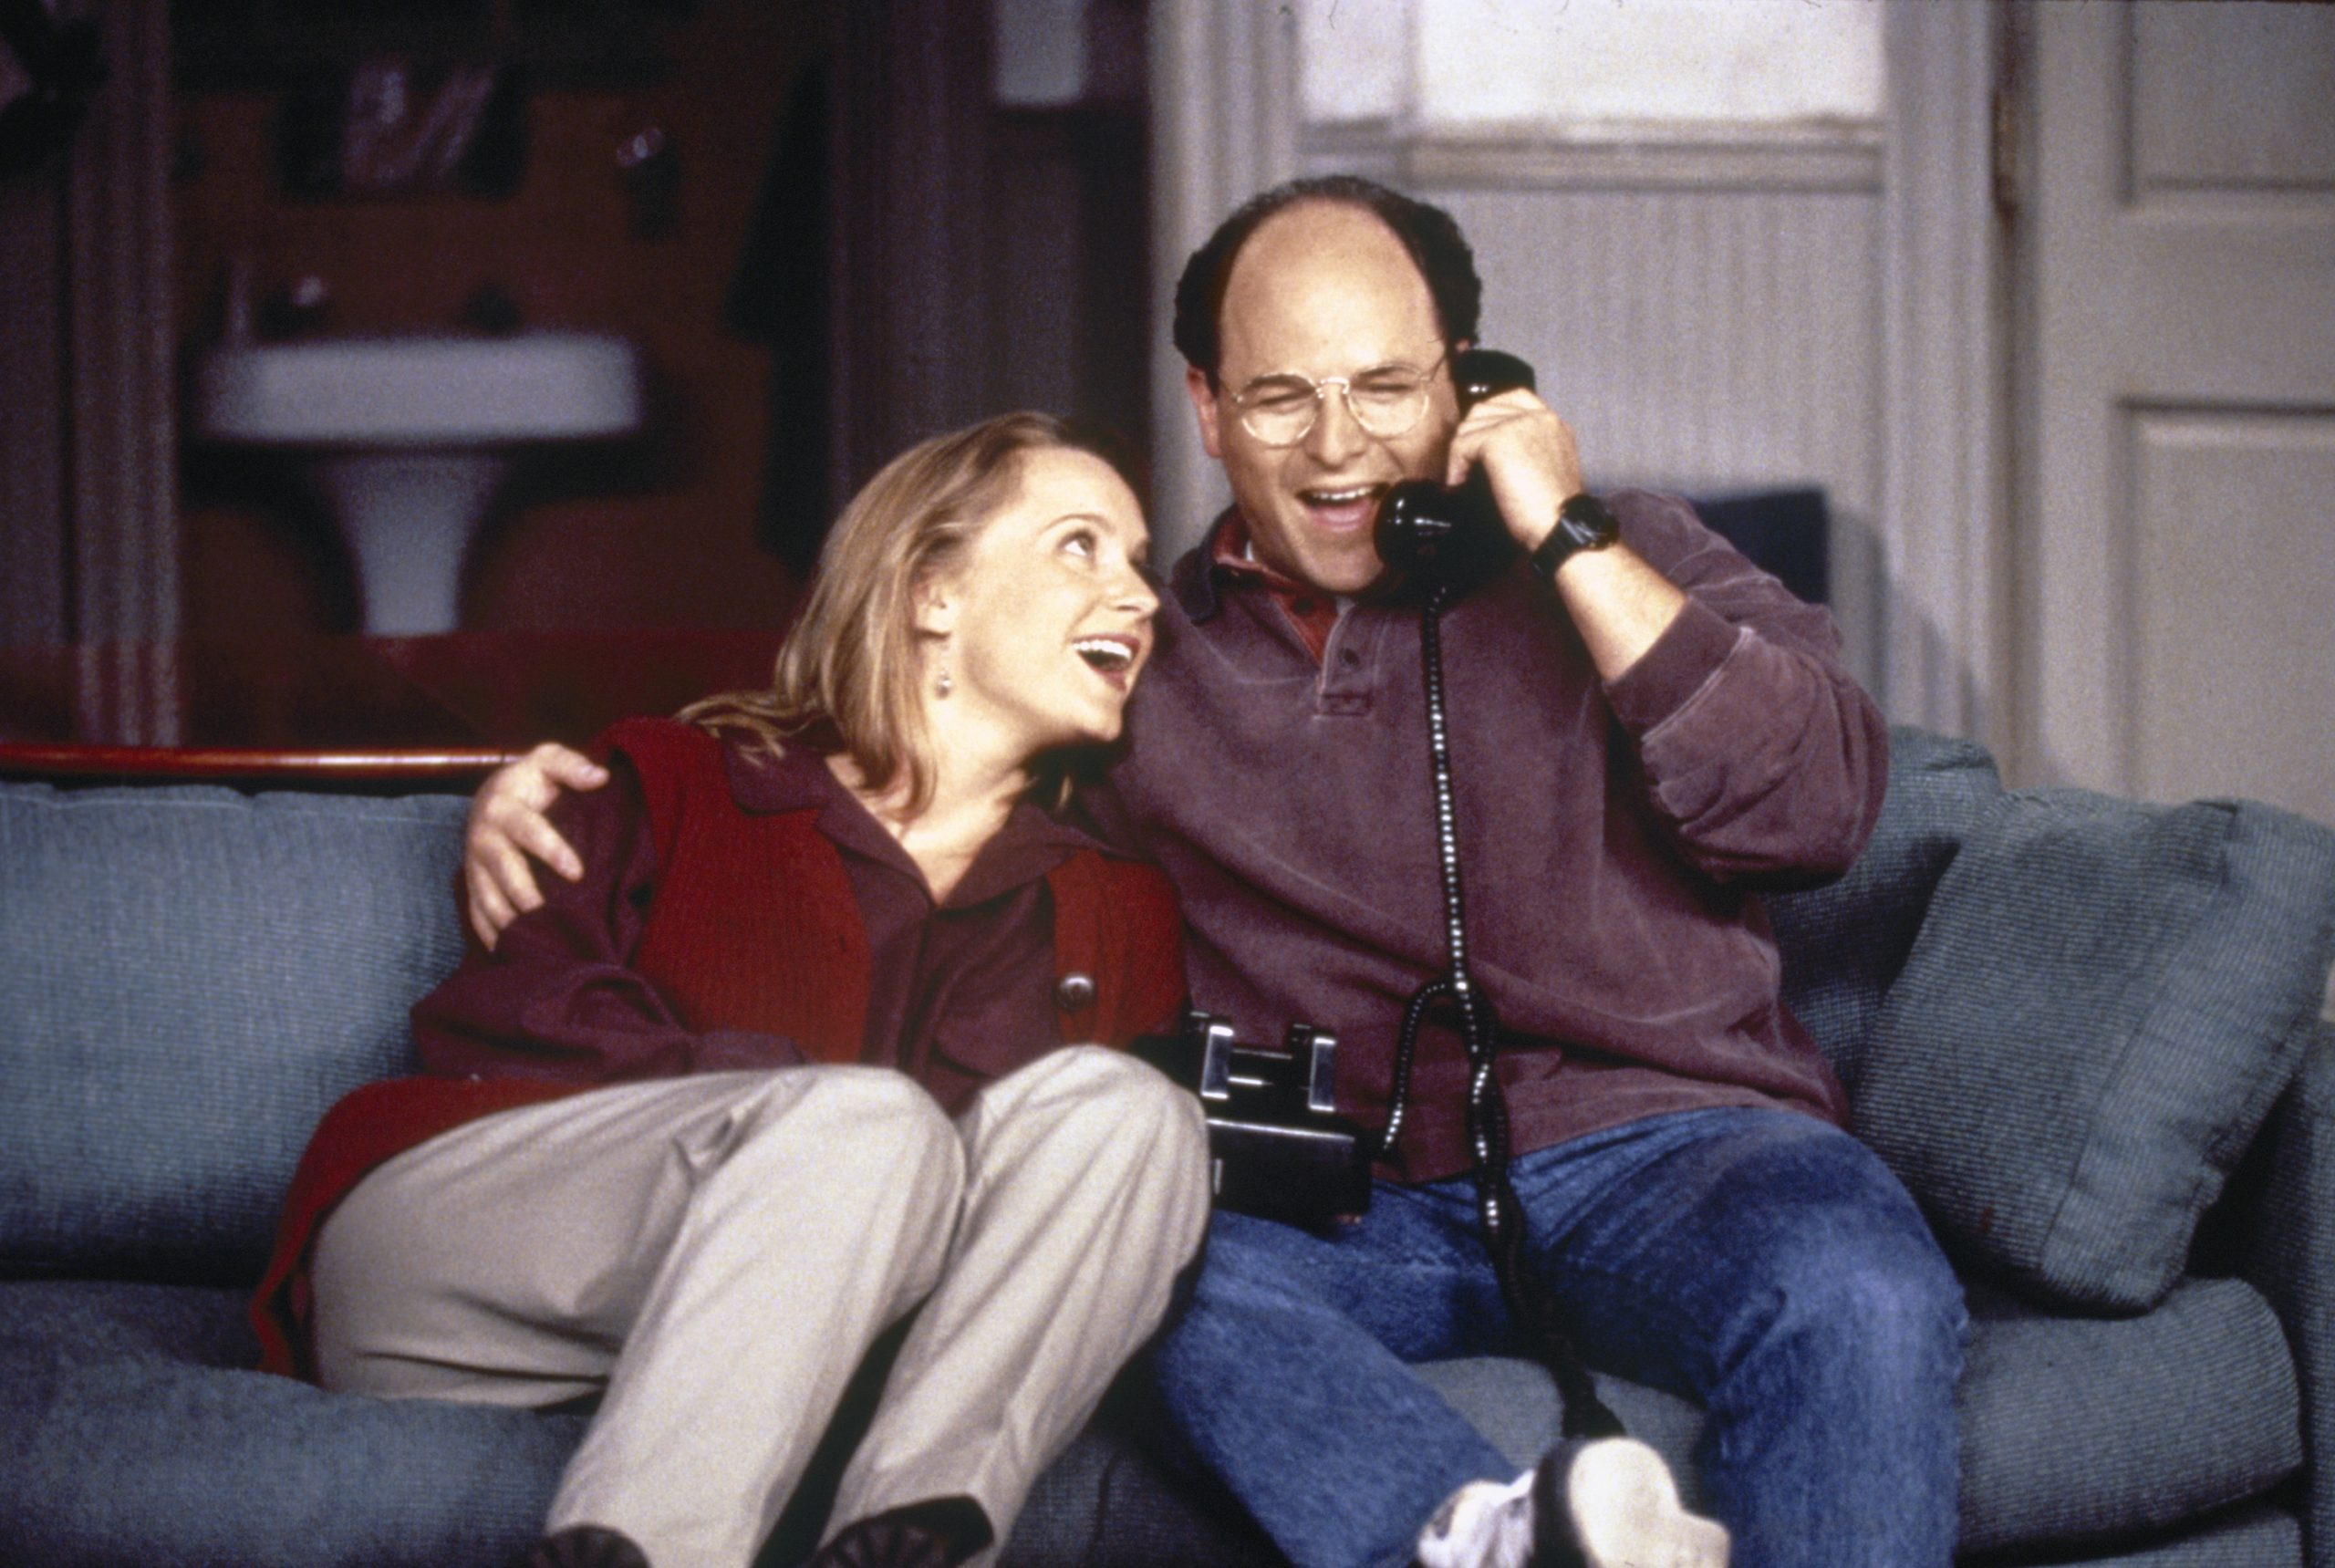 George and Susan on Seinfeld